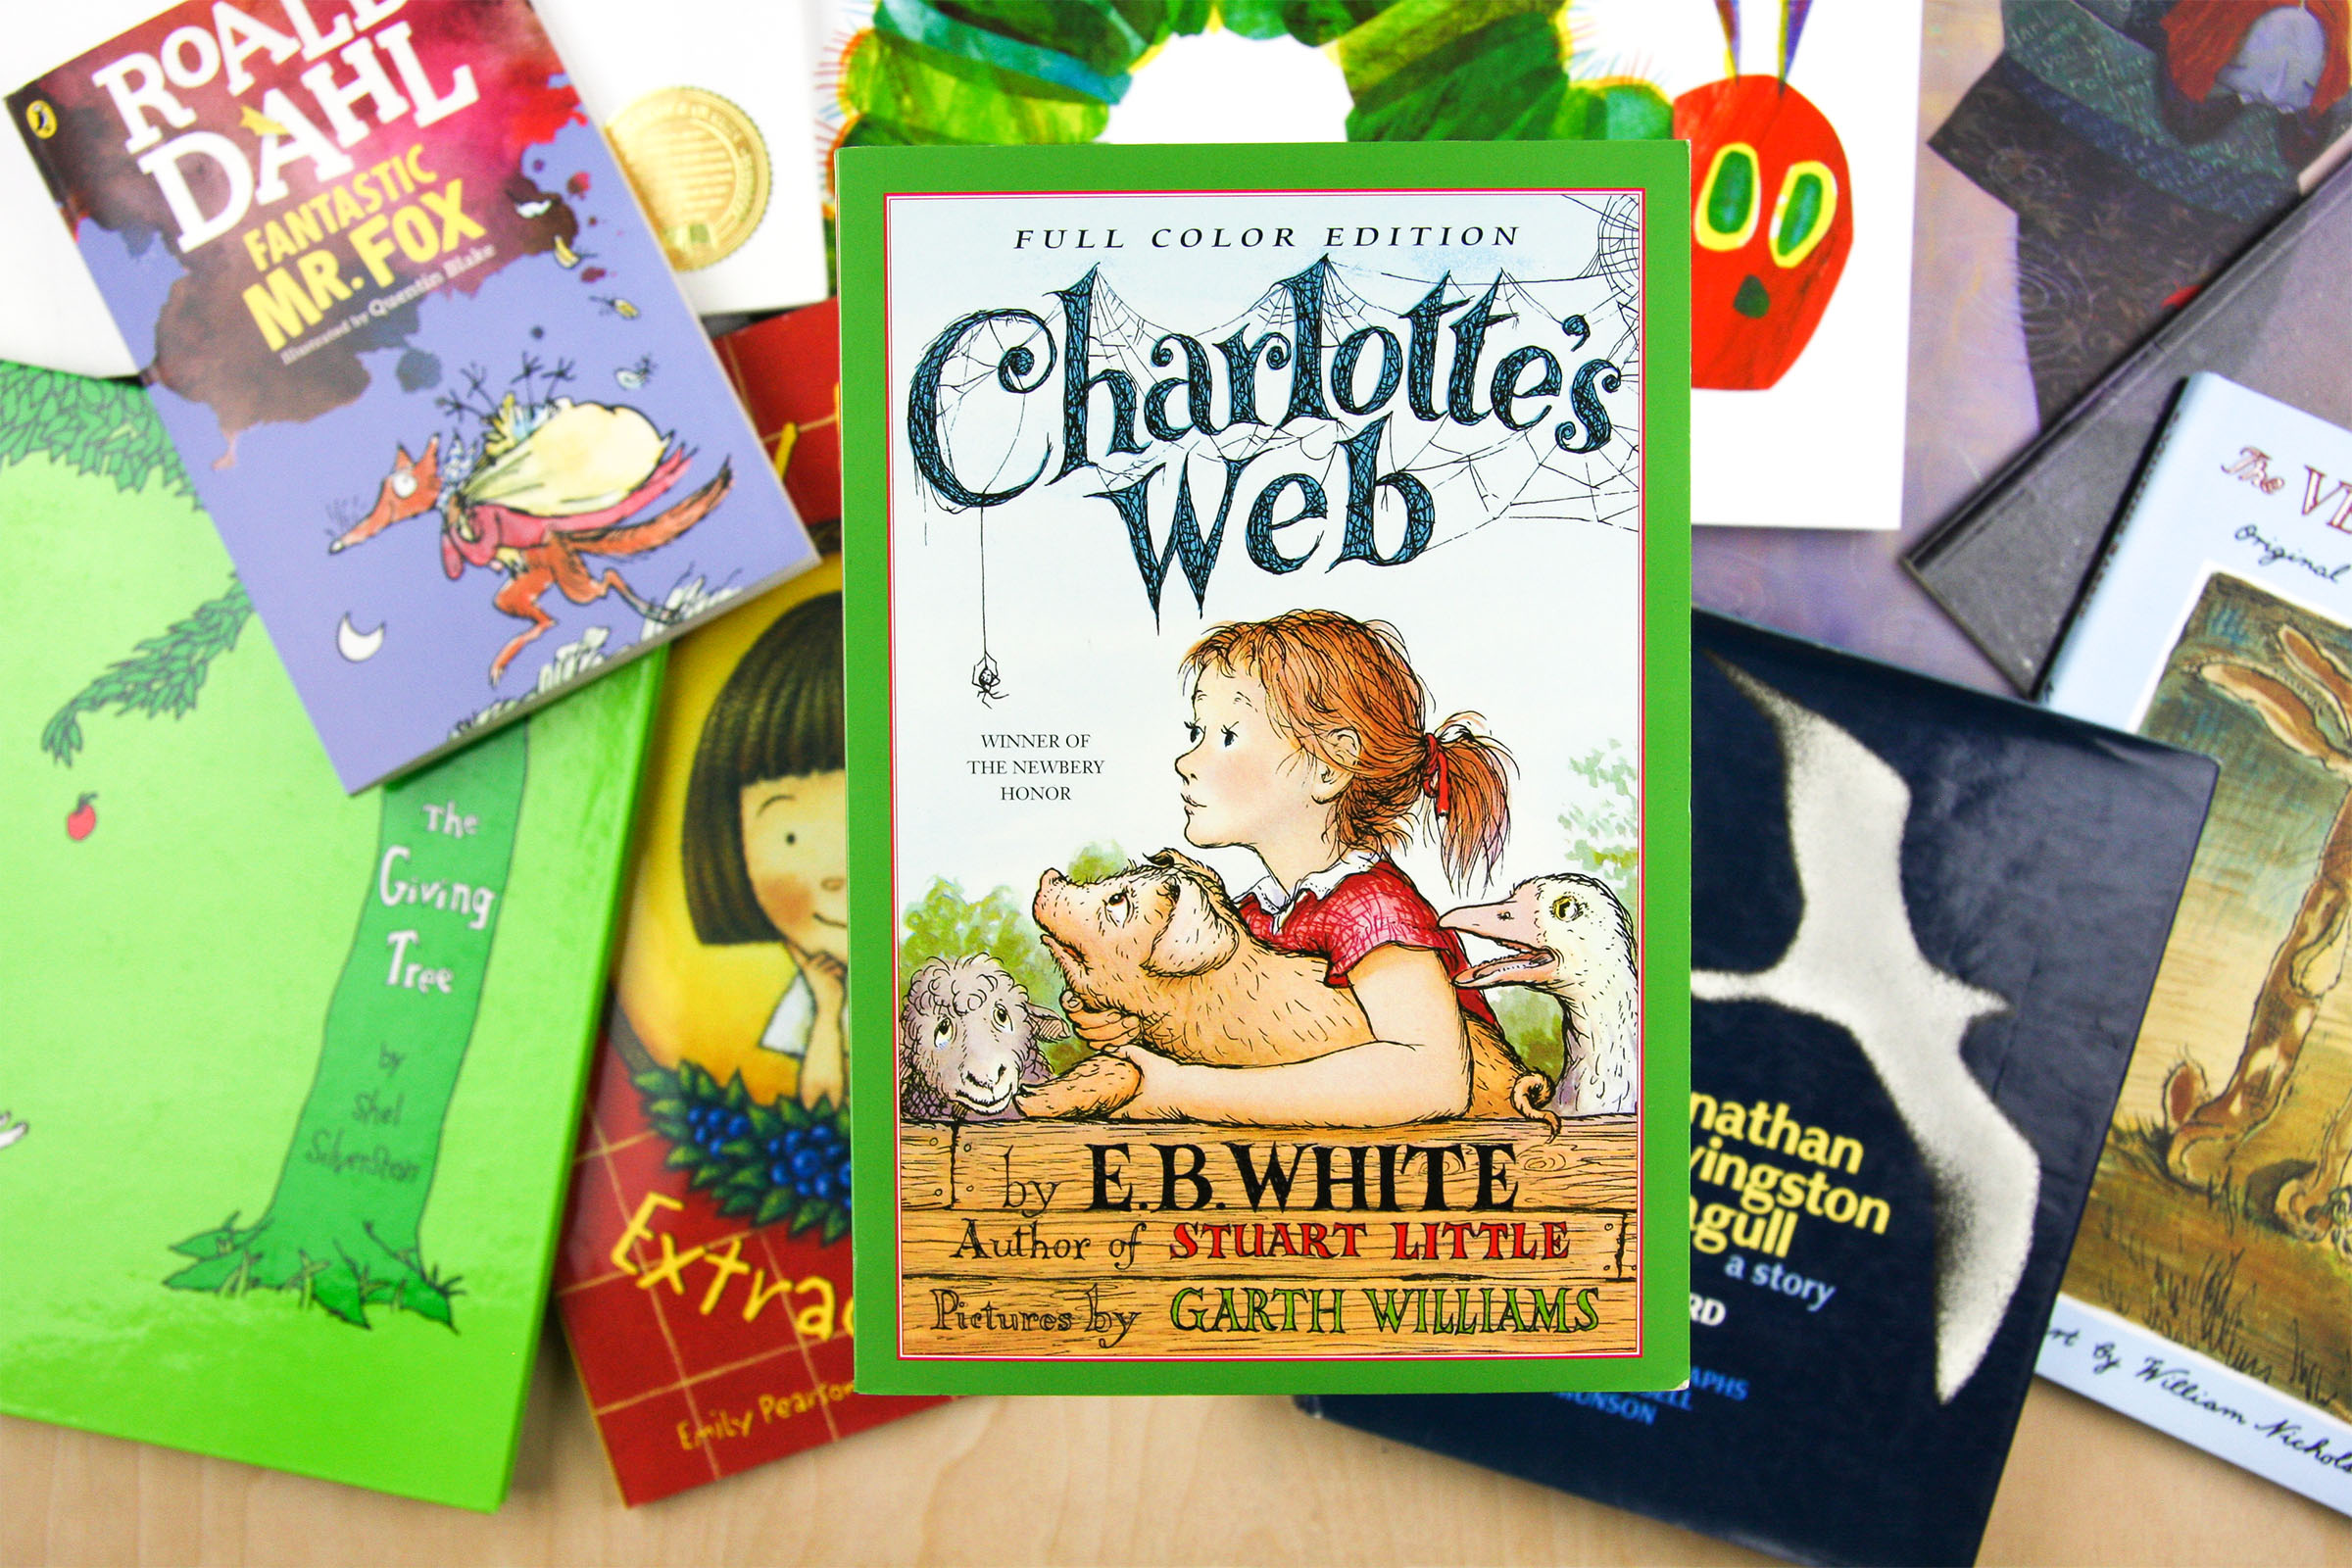 Charlottes Web by E.B.White